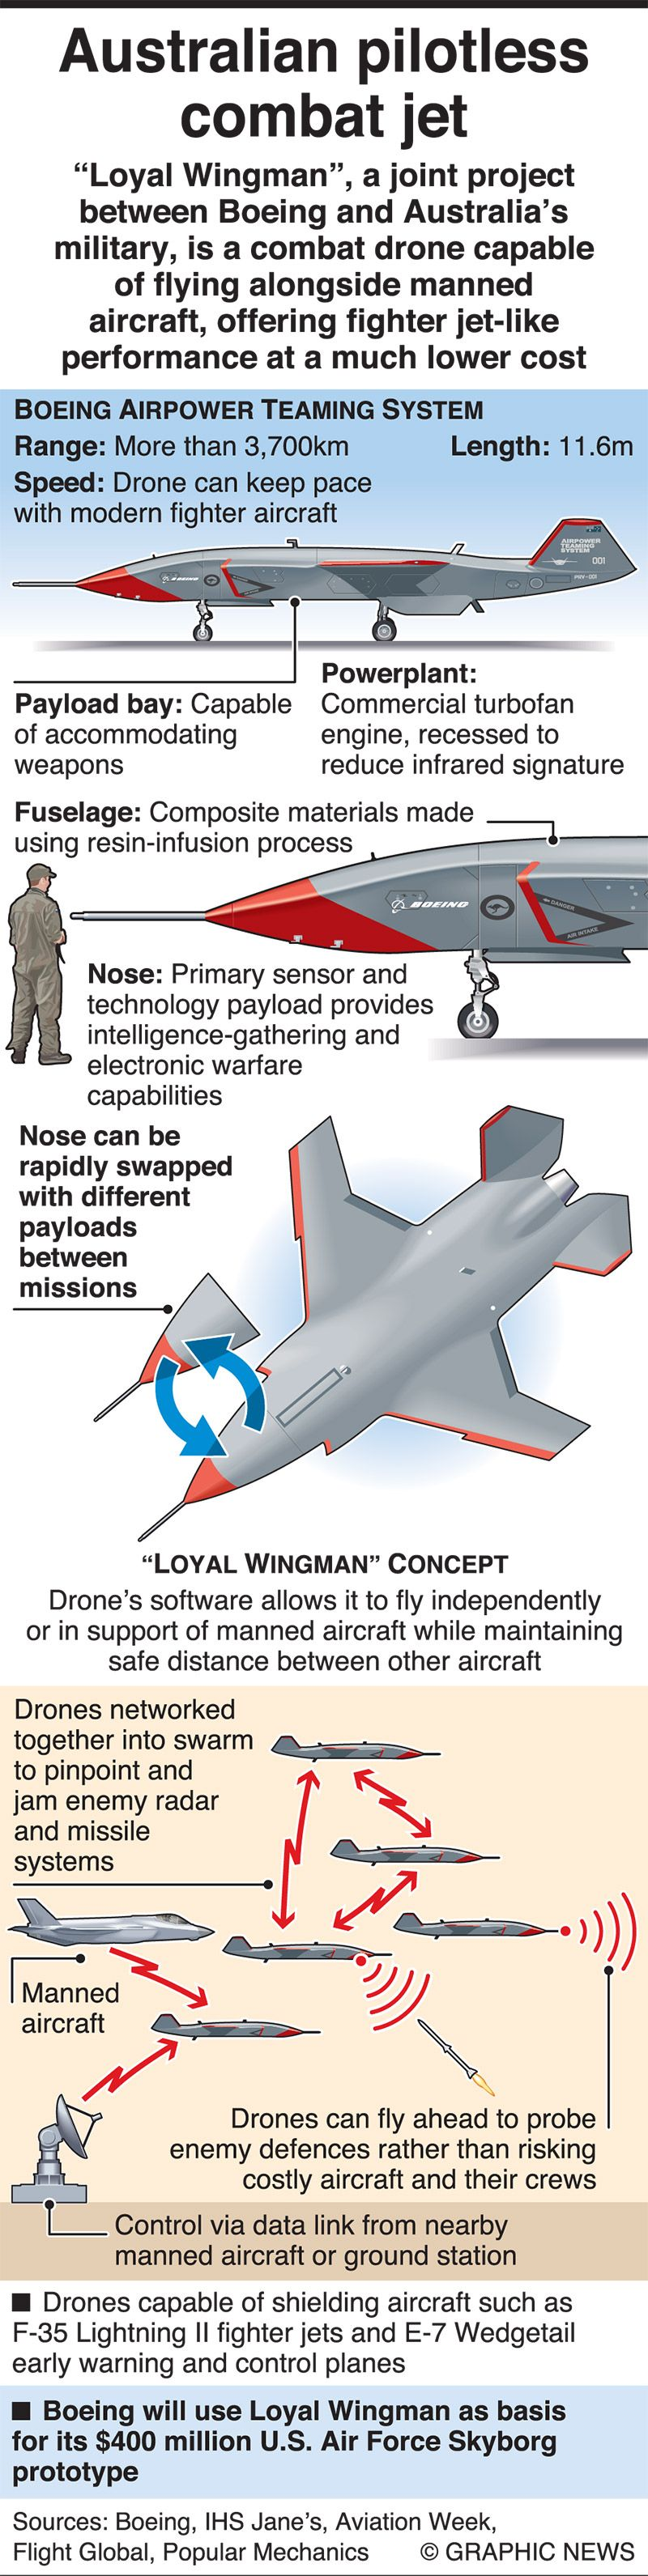 All about Boeing 'Loyal Wingman' drone